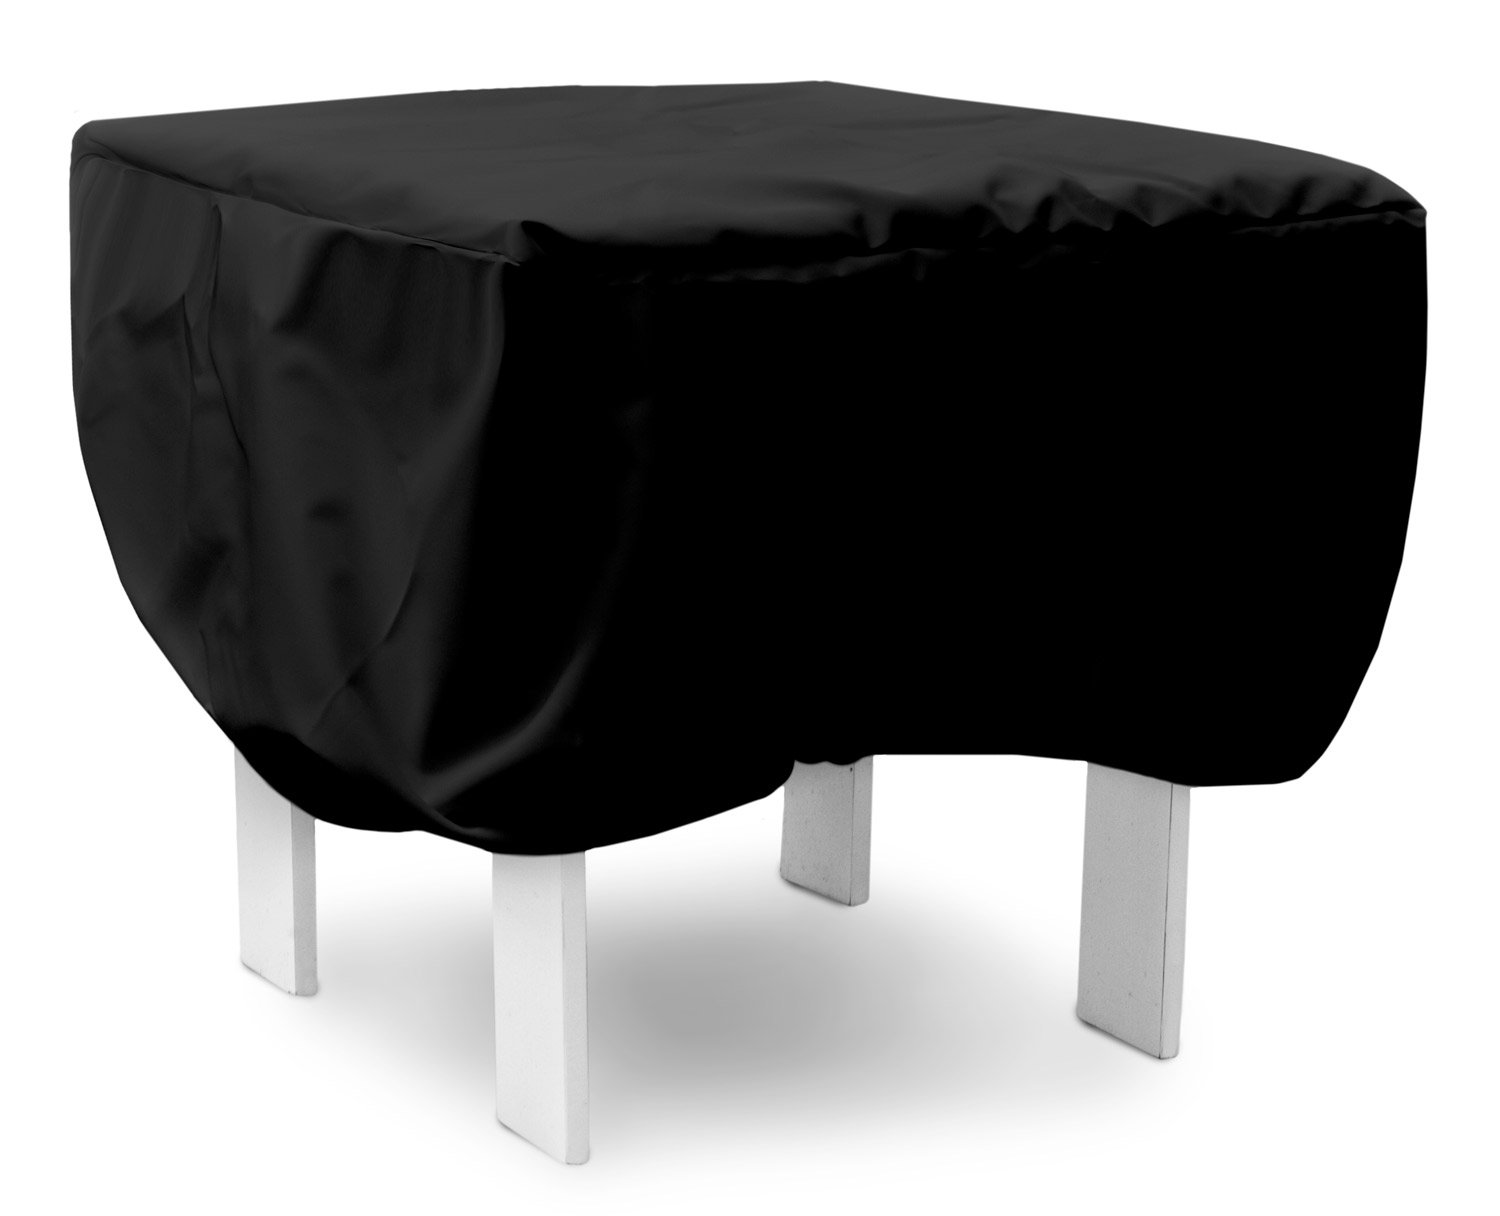 KoverRoos Weathermax 79317 30-Inch Ottoman/Small Table Cover, 30 by 30 by 15-Inch, Black